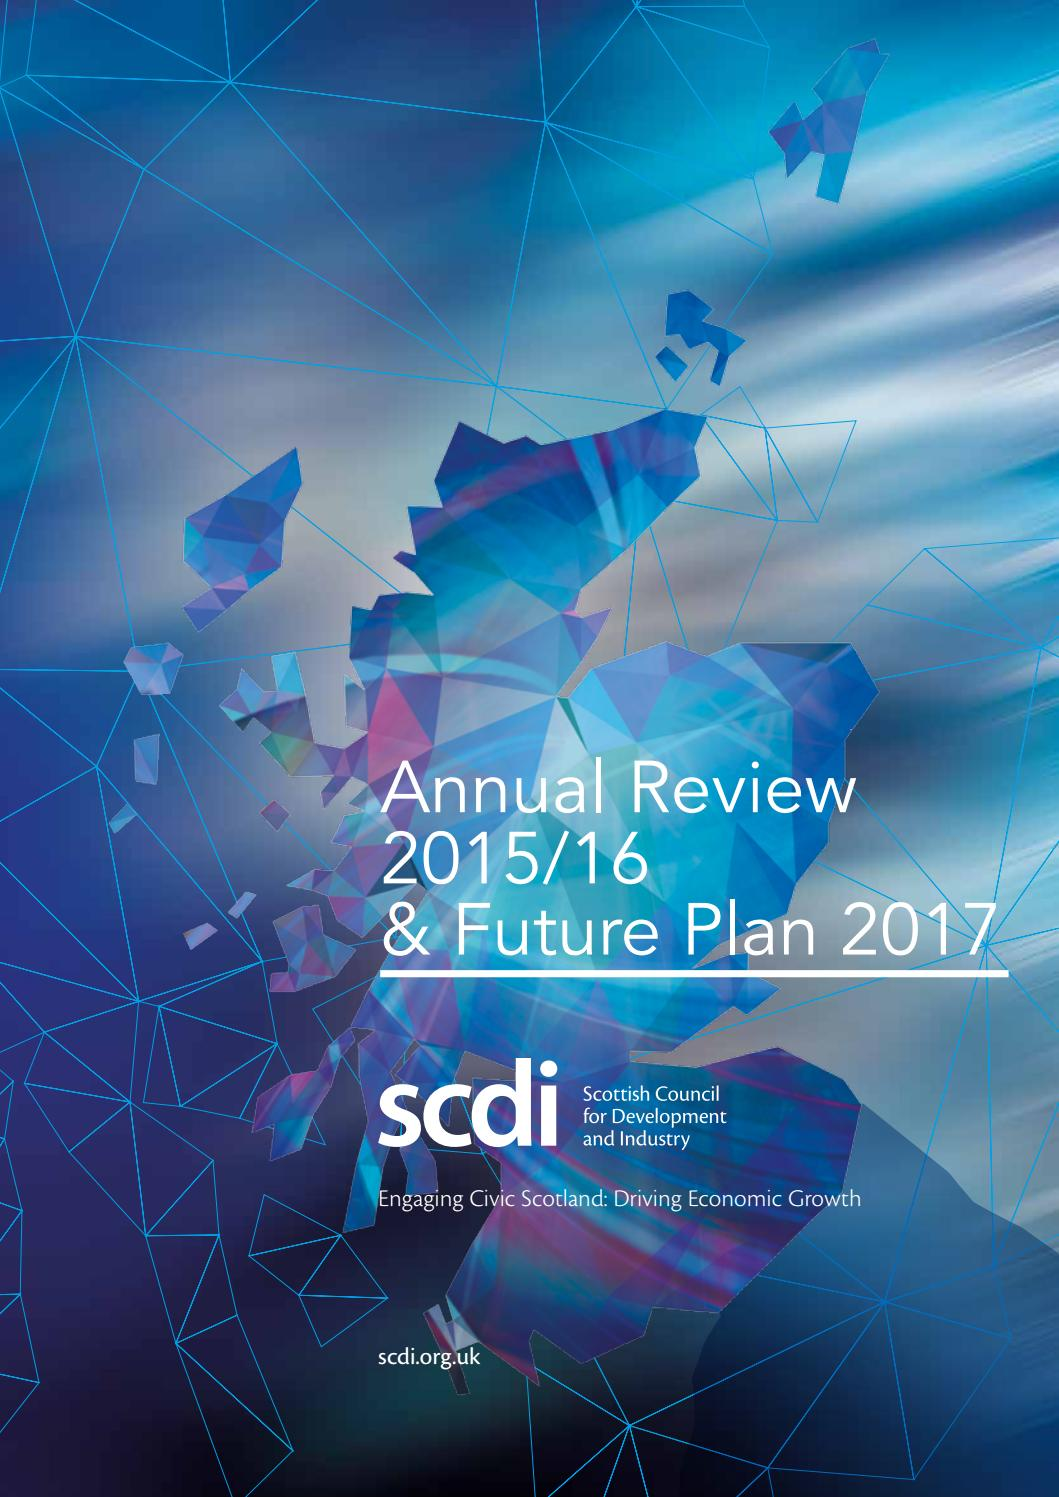 Scdi annual review 15 16 future plan 2017 by scdi issuu malvernweather Choice Image